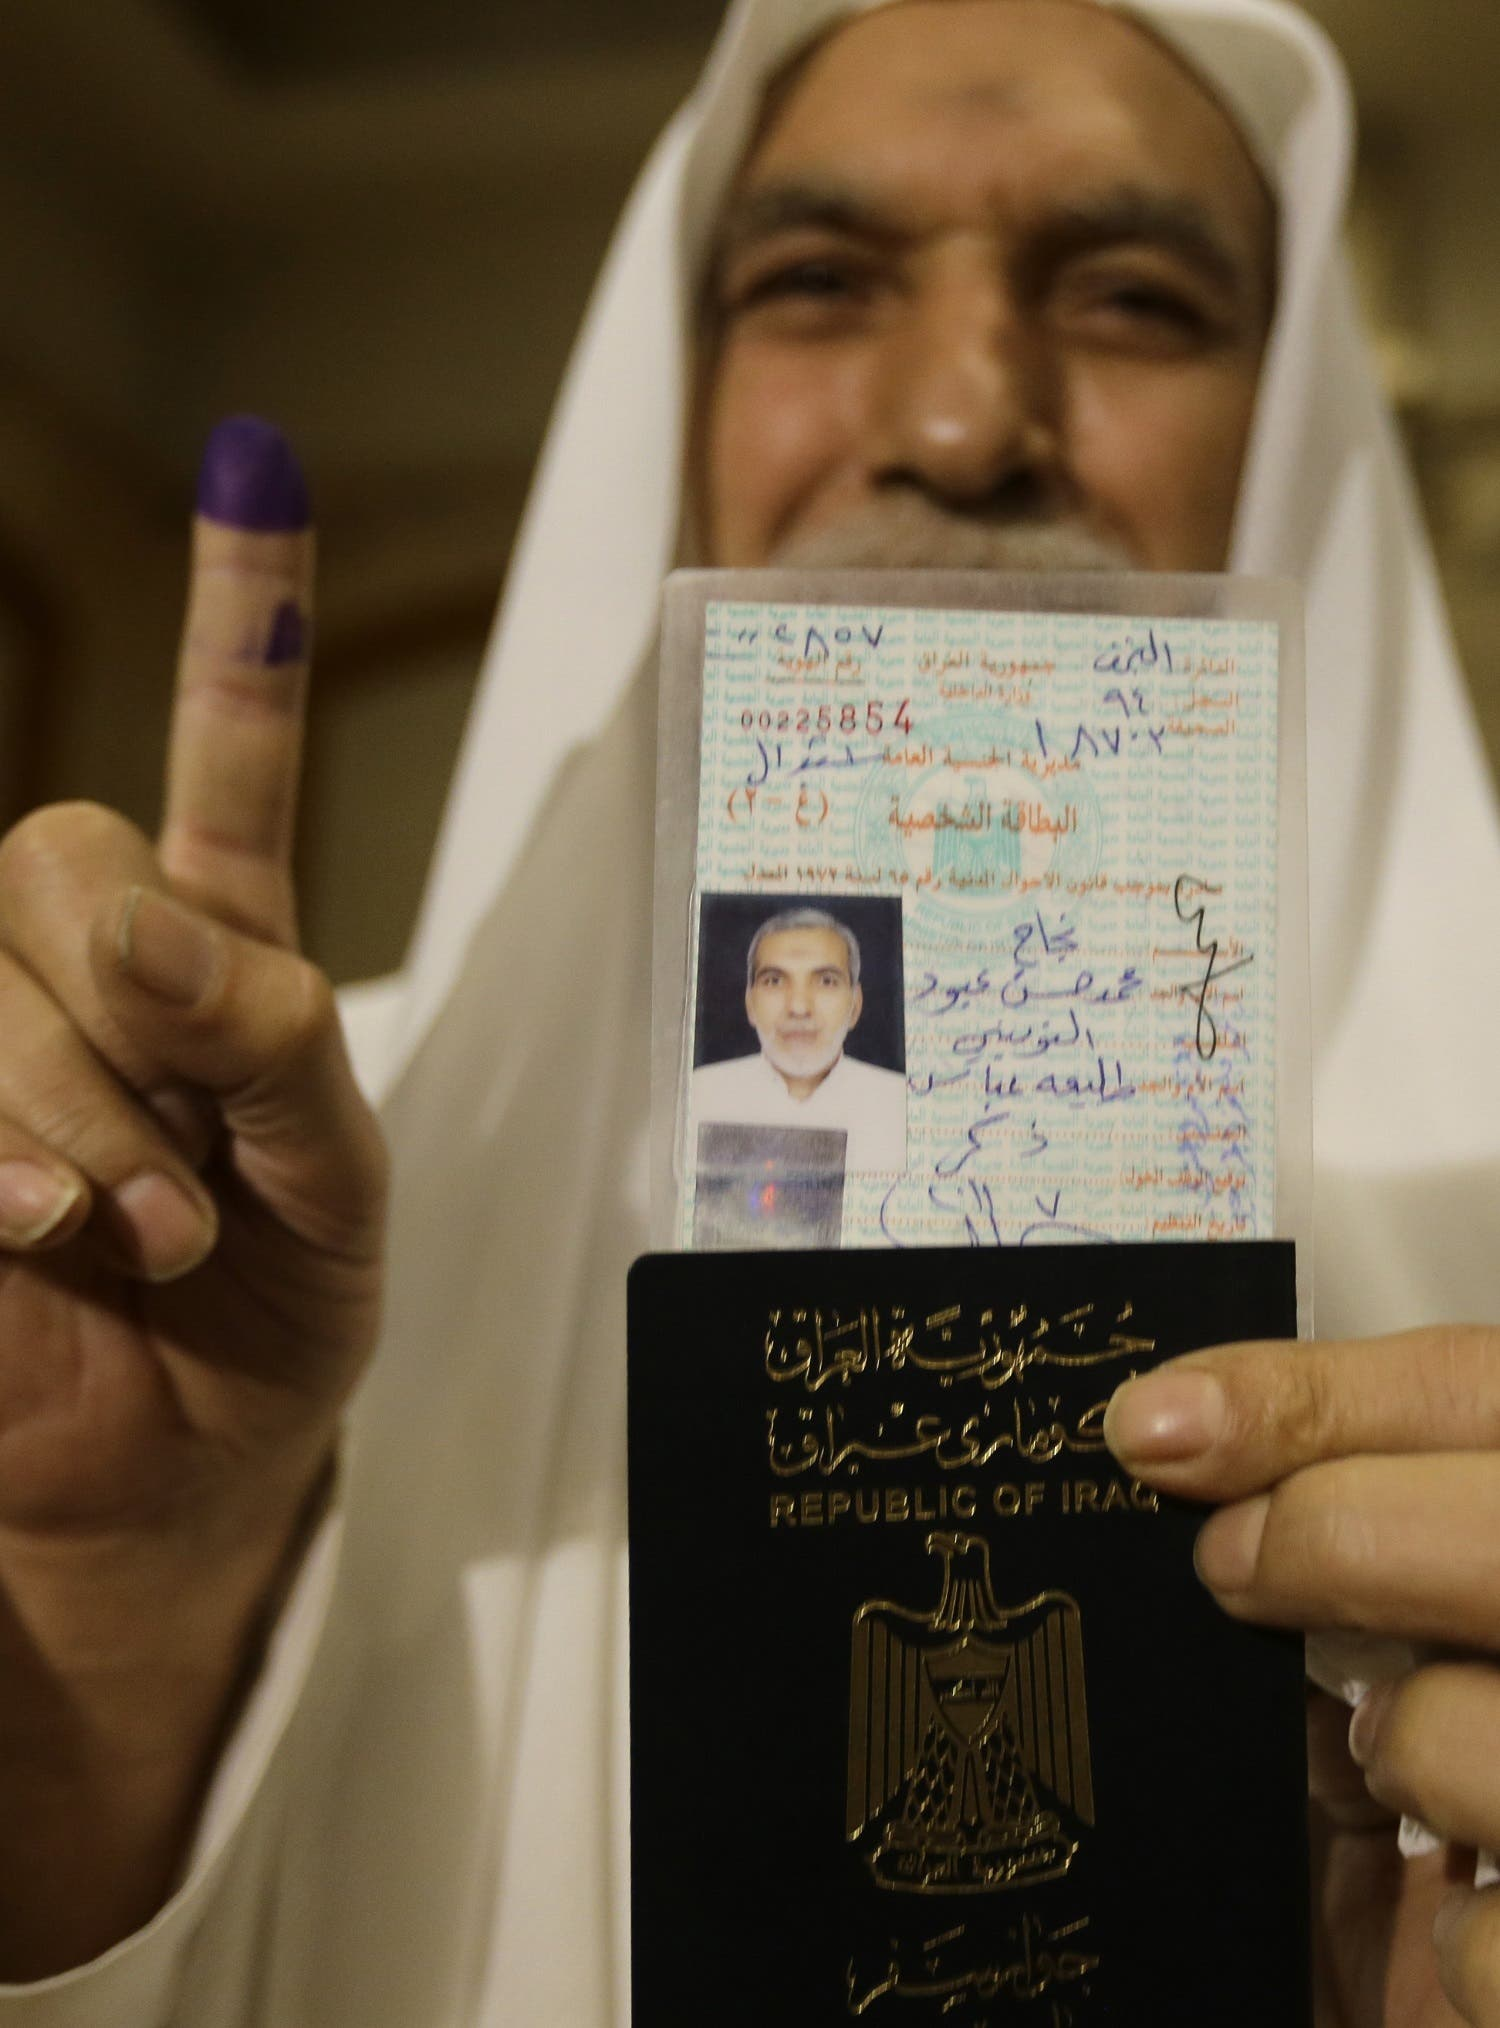 An Iraqi resident of Syria shows his identity papers and his ink-stained index finger after voting in Sayyida Zeinab on the outskirts of Damascus on May 10, 2018. (AFP)